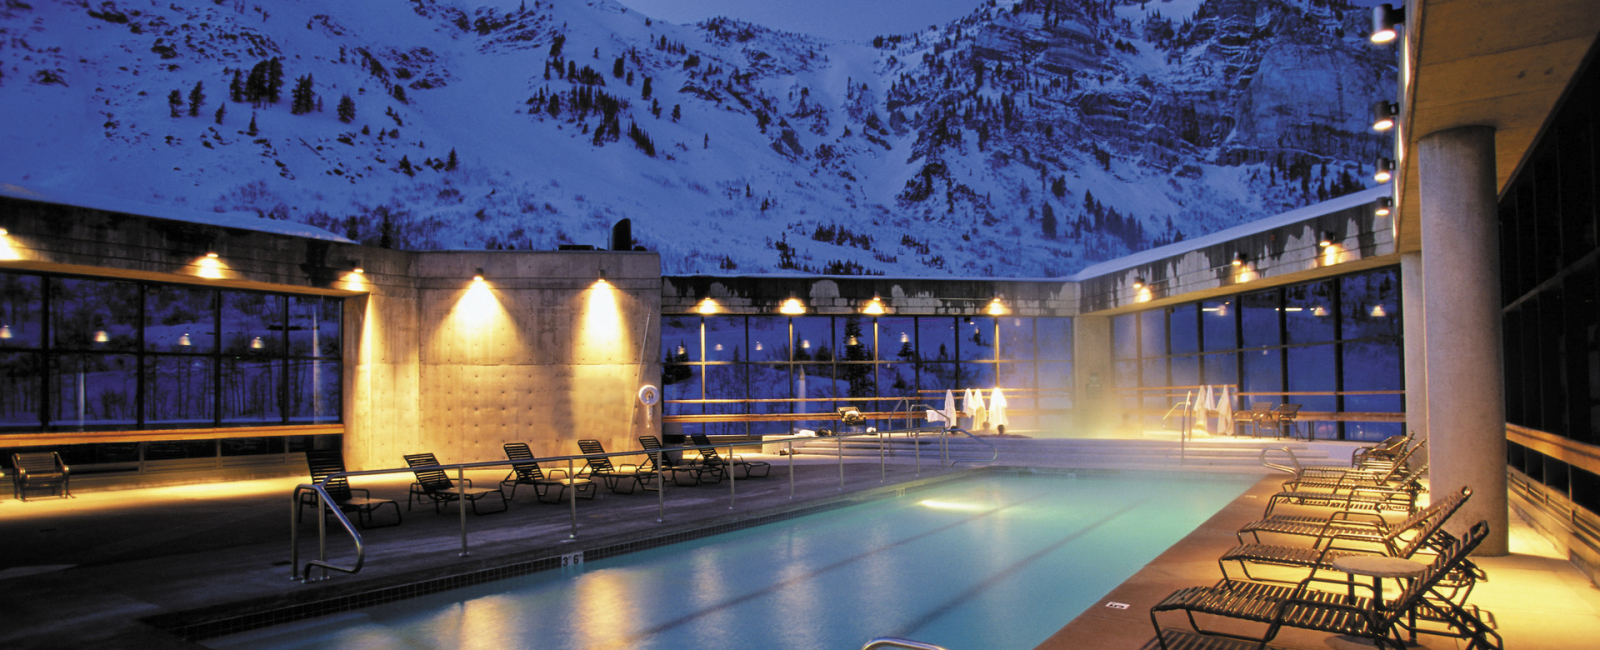 A Look Inside the Cliff Lodge at Snowbird